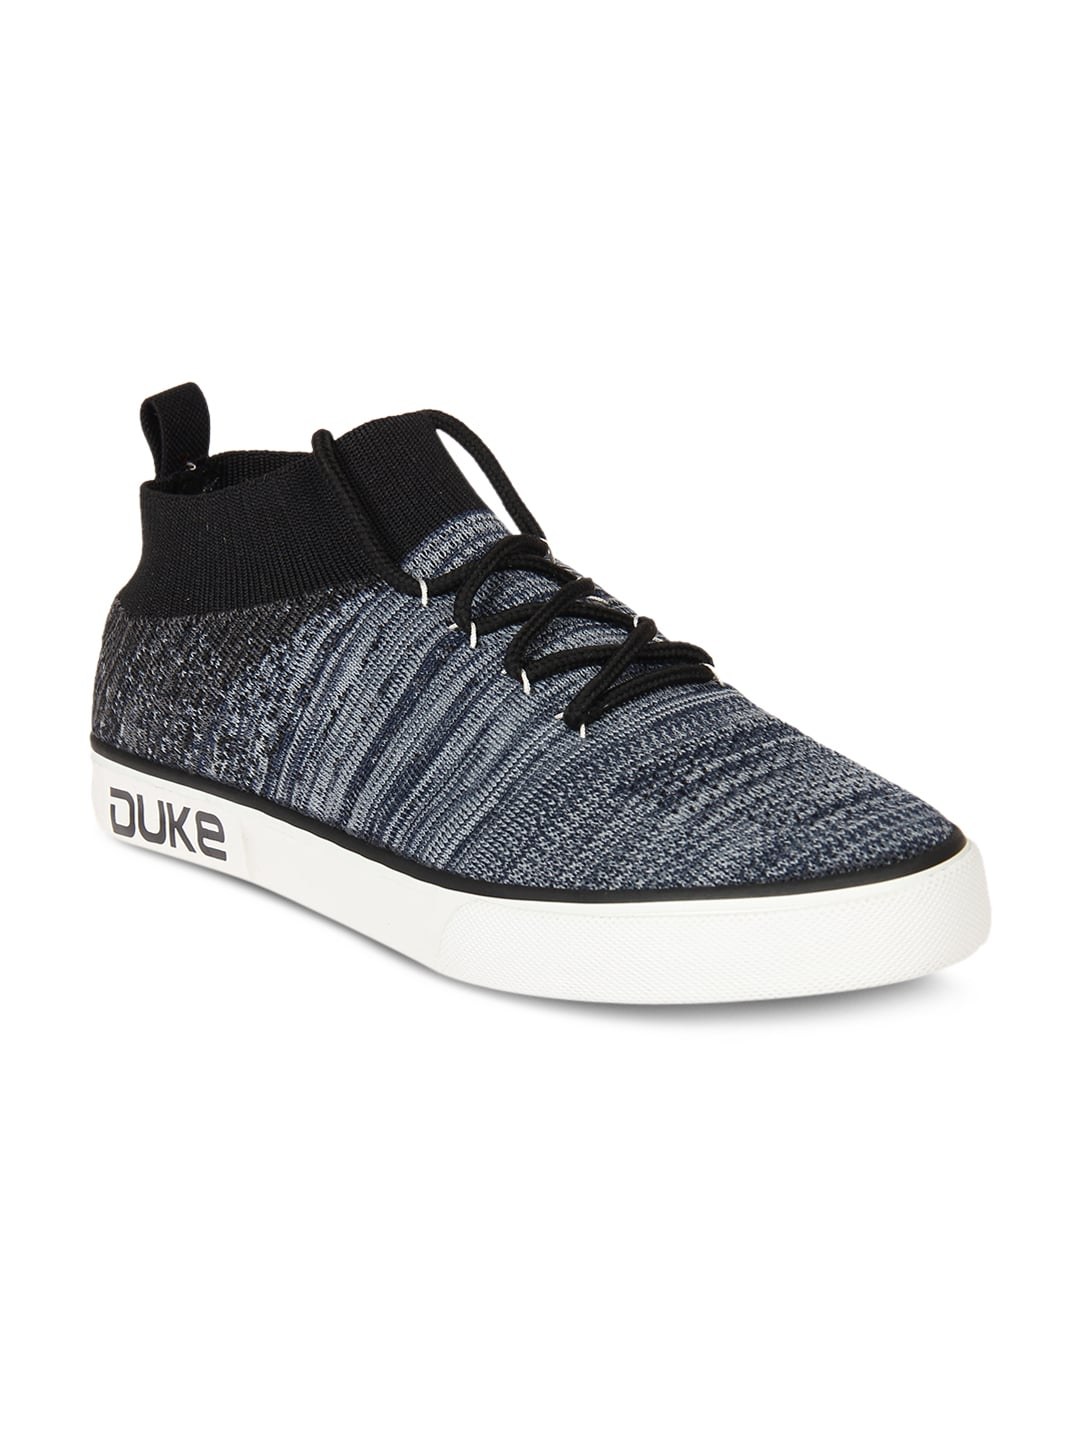 Duke Men Blue & Grey Sneakers image